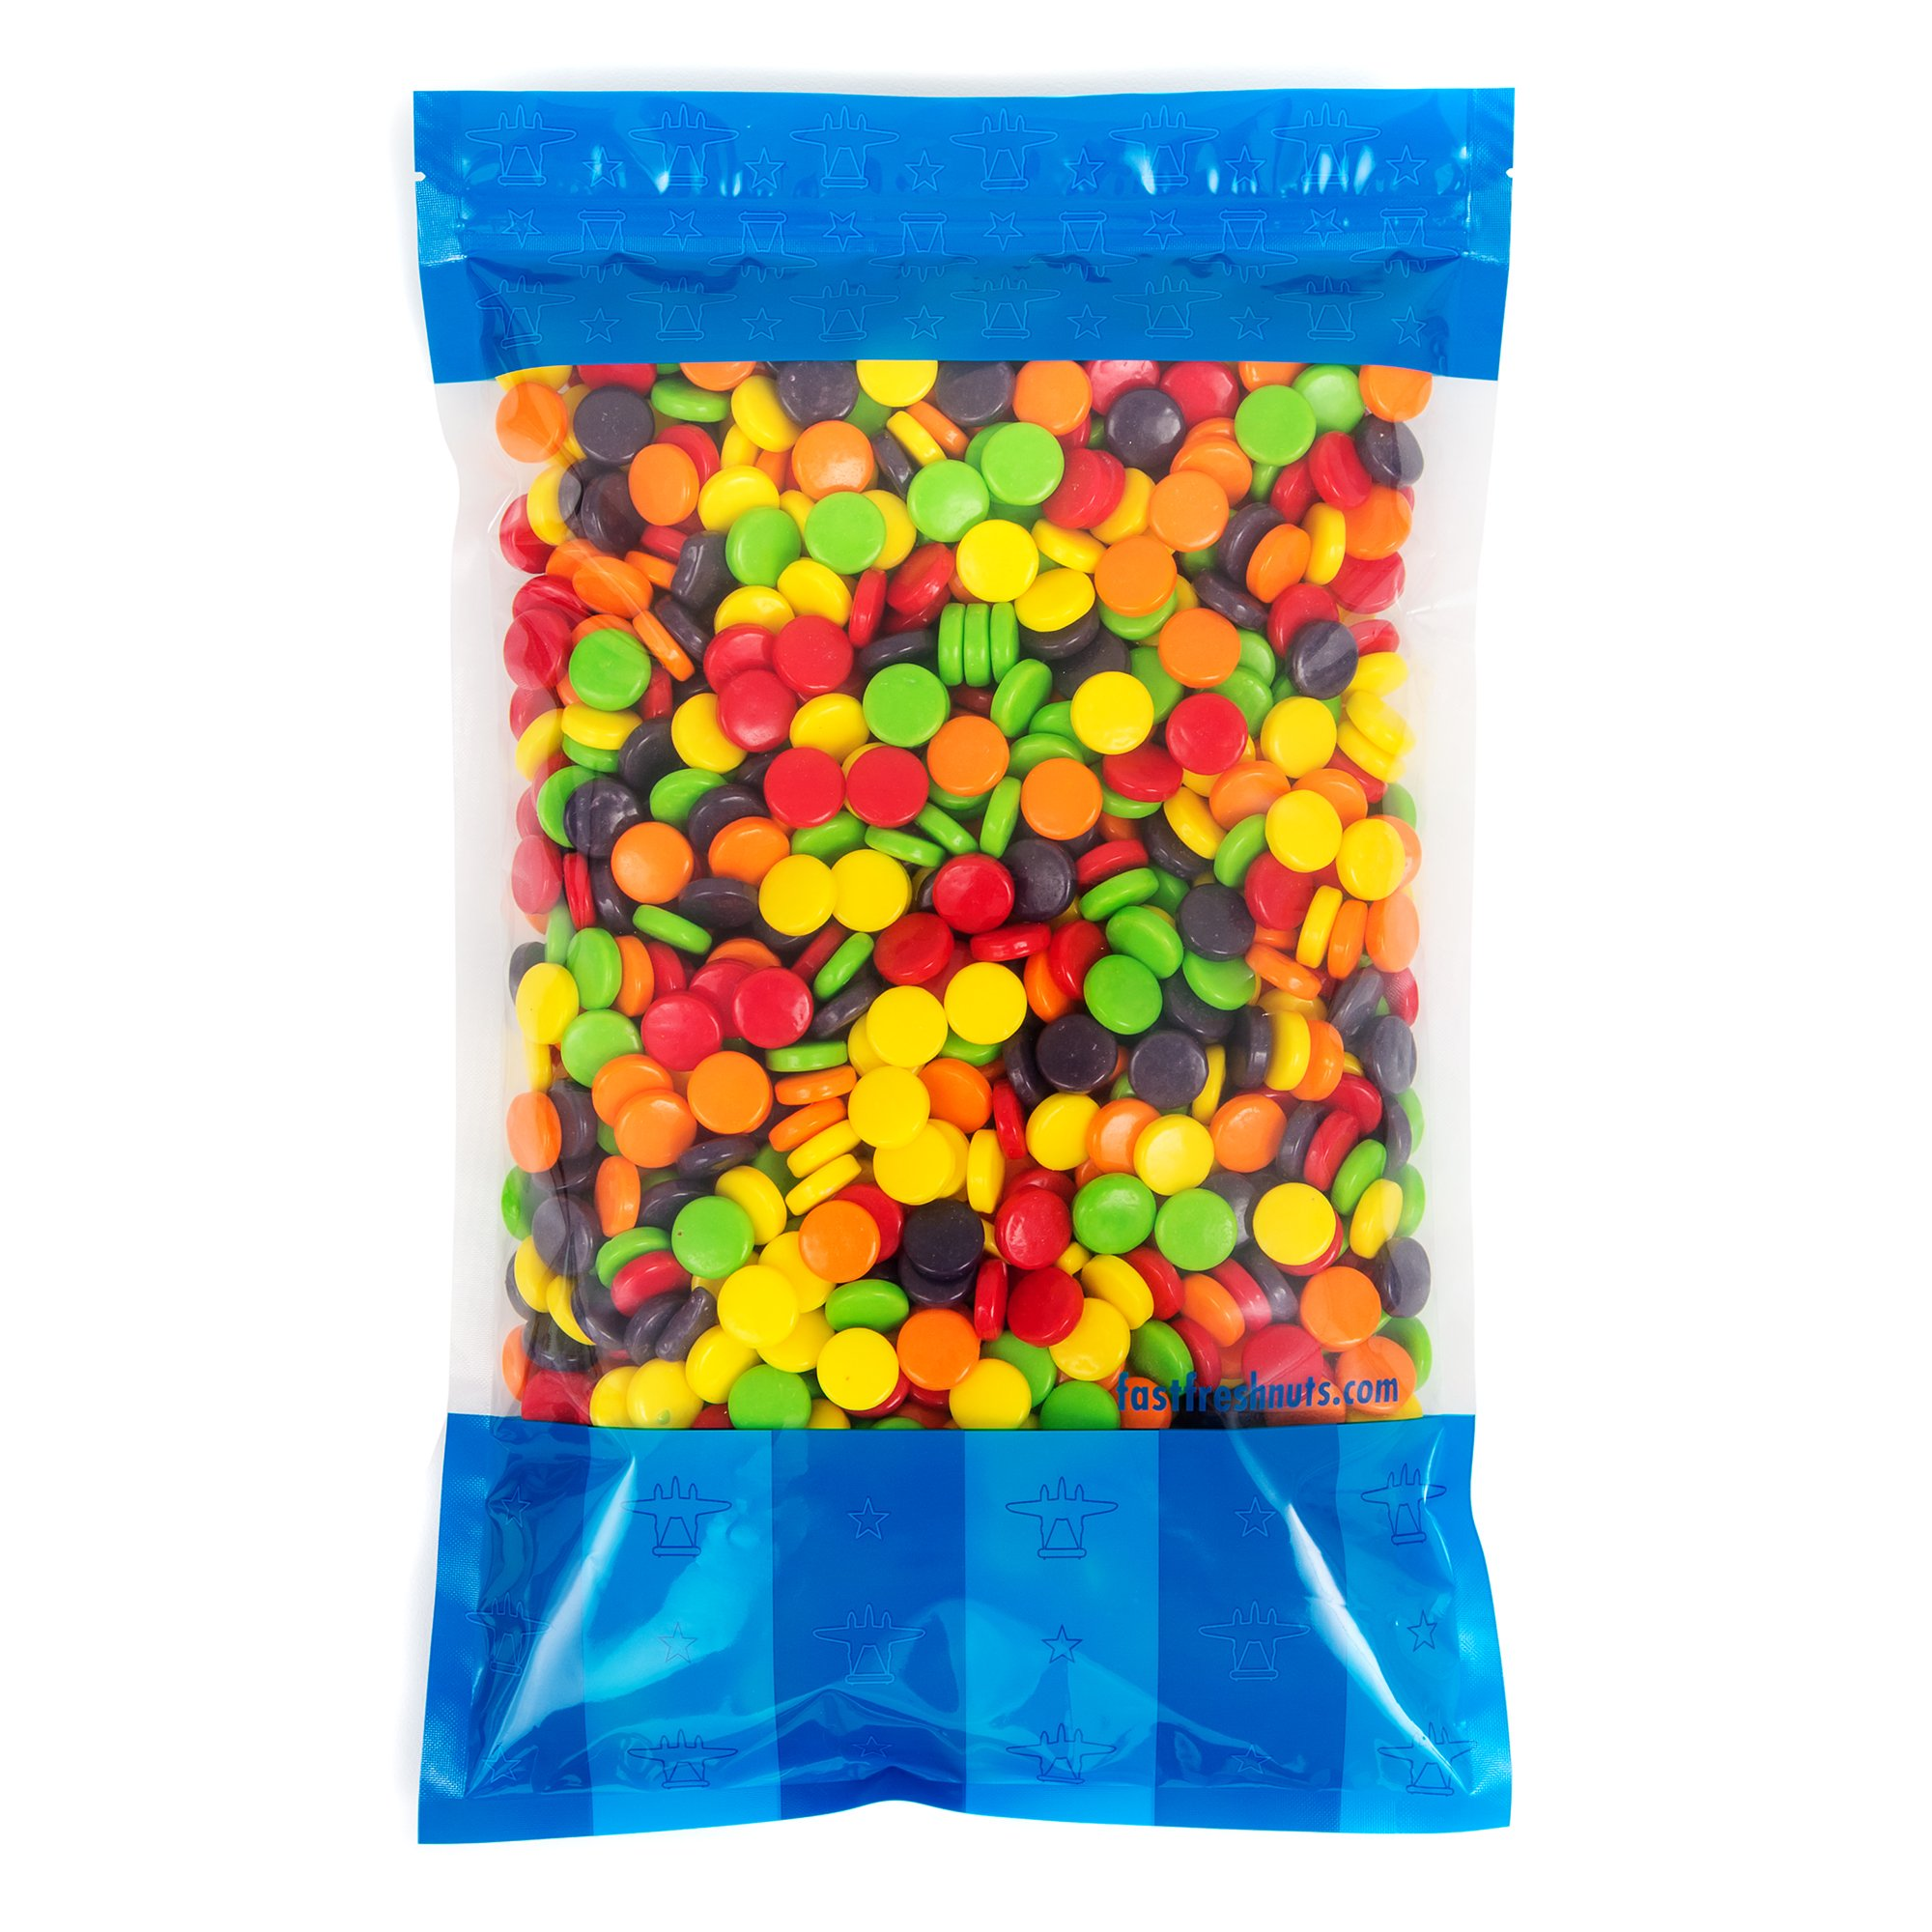 Bulk Chewy Spree Candy - 5 lbs in a Resealable Bomber Bag - Great For Parties - Office Candy Bowls - Vending Refills - Wholesale by Fast Fresh Nuts